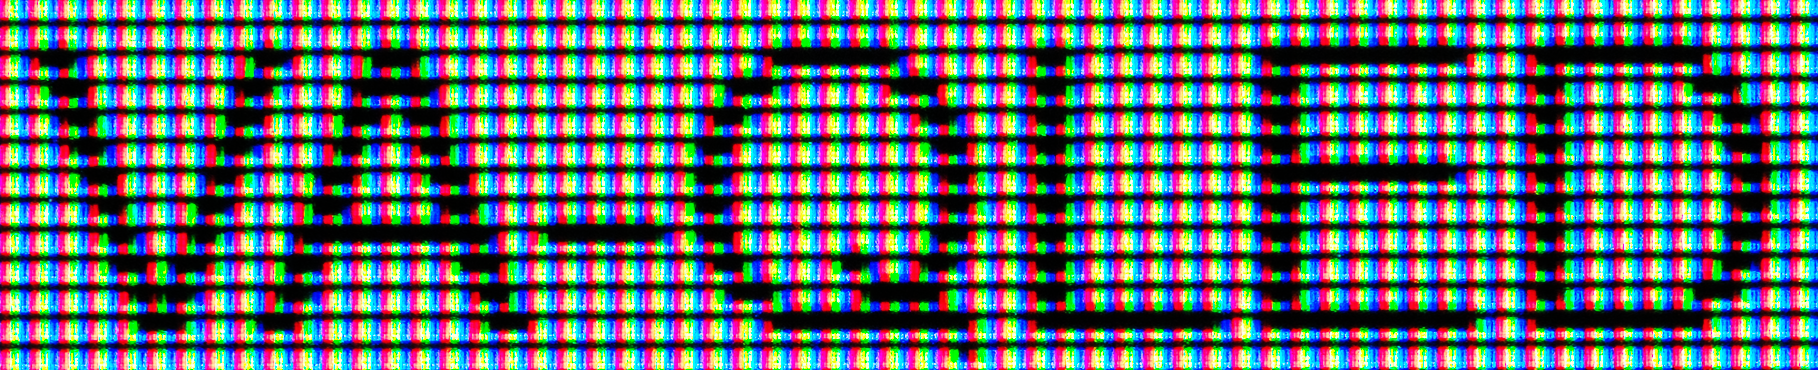 Text rendering doesn't look too good on VA-QLED display panels